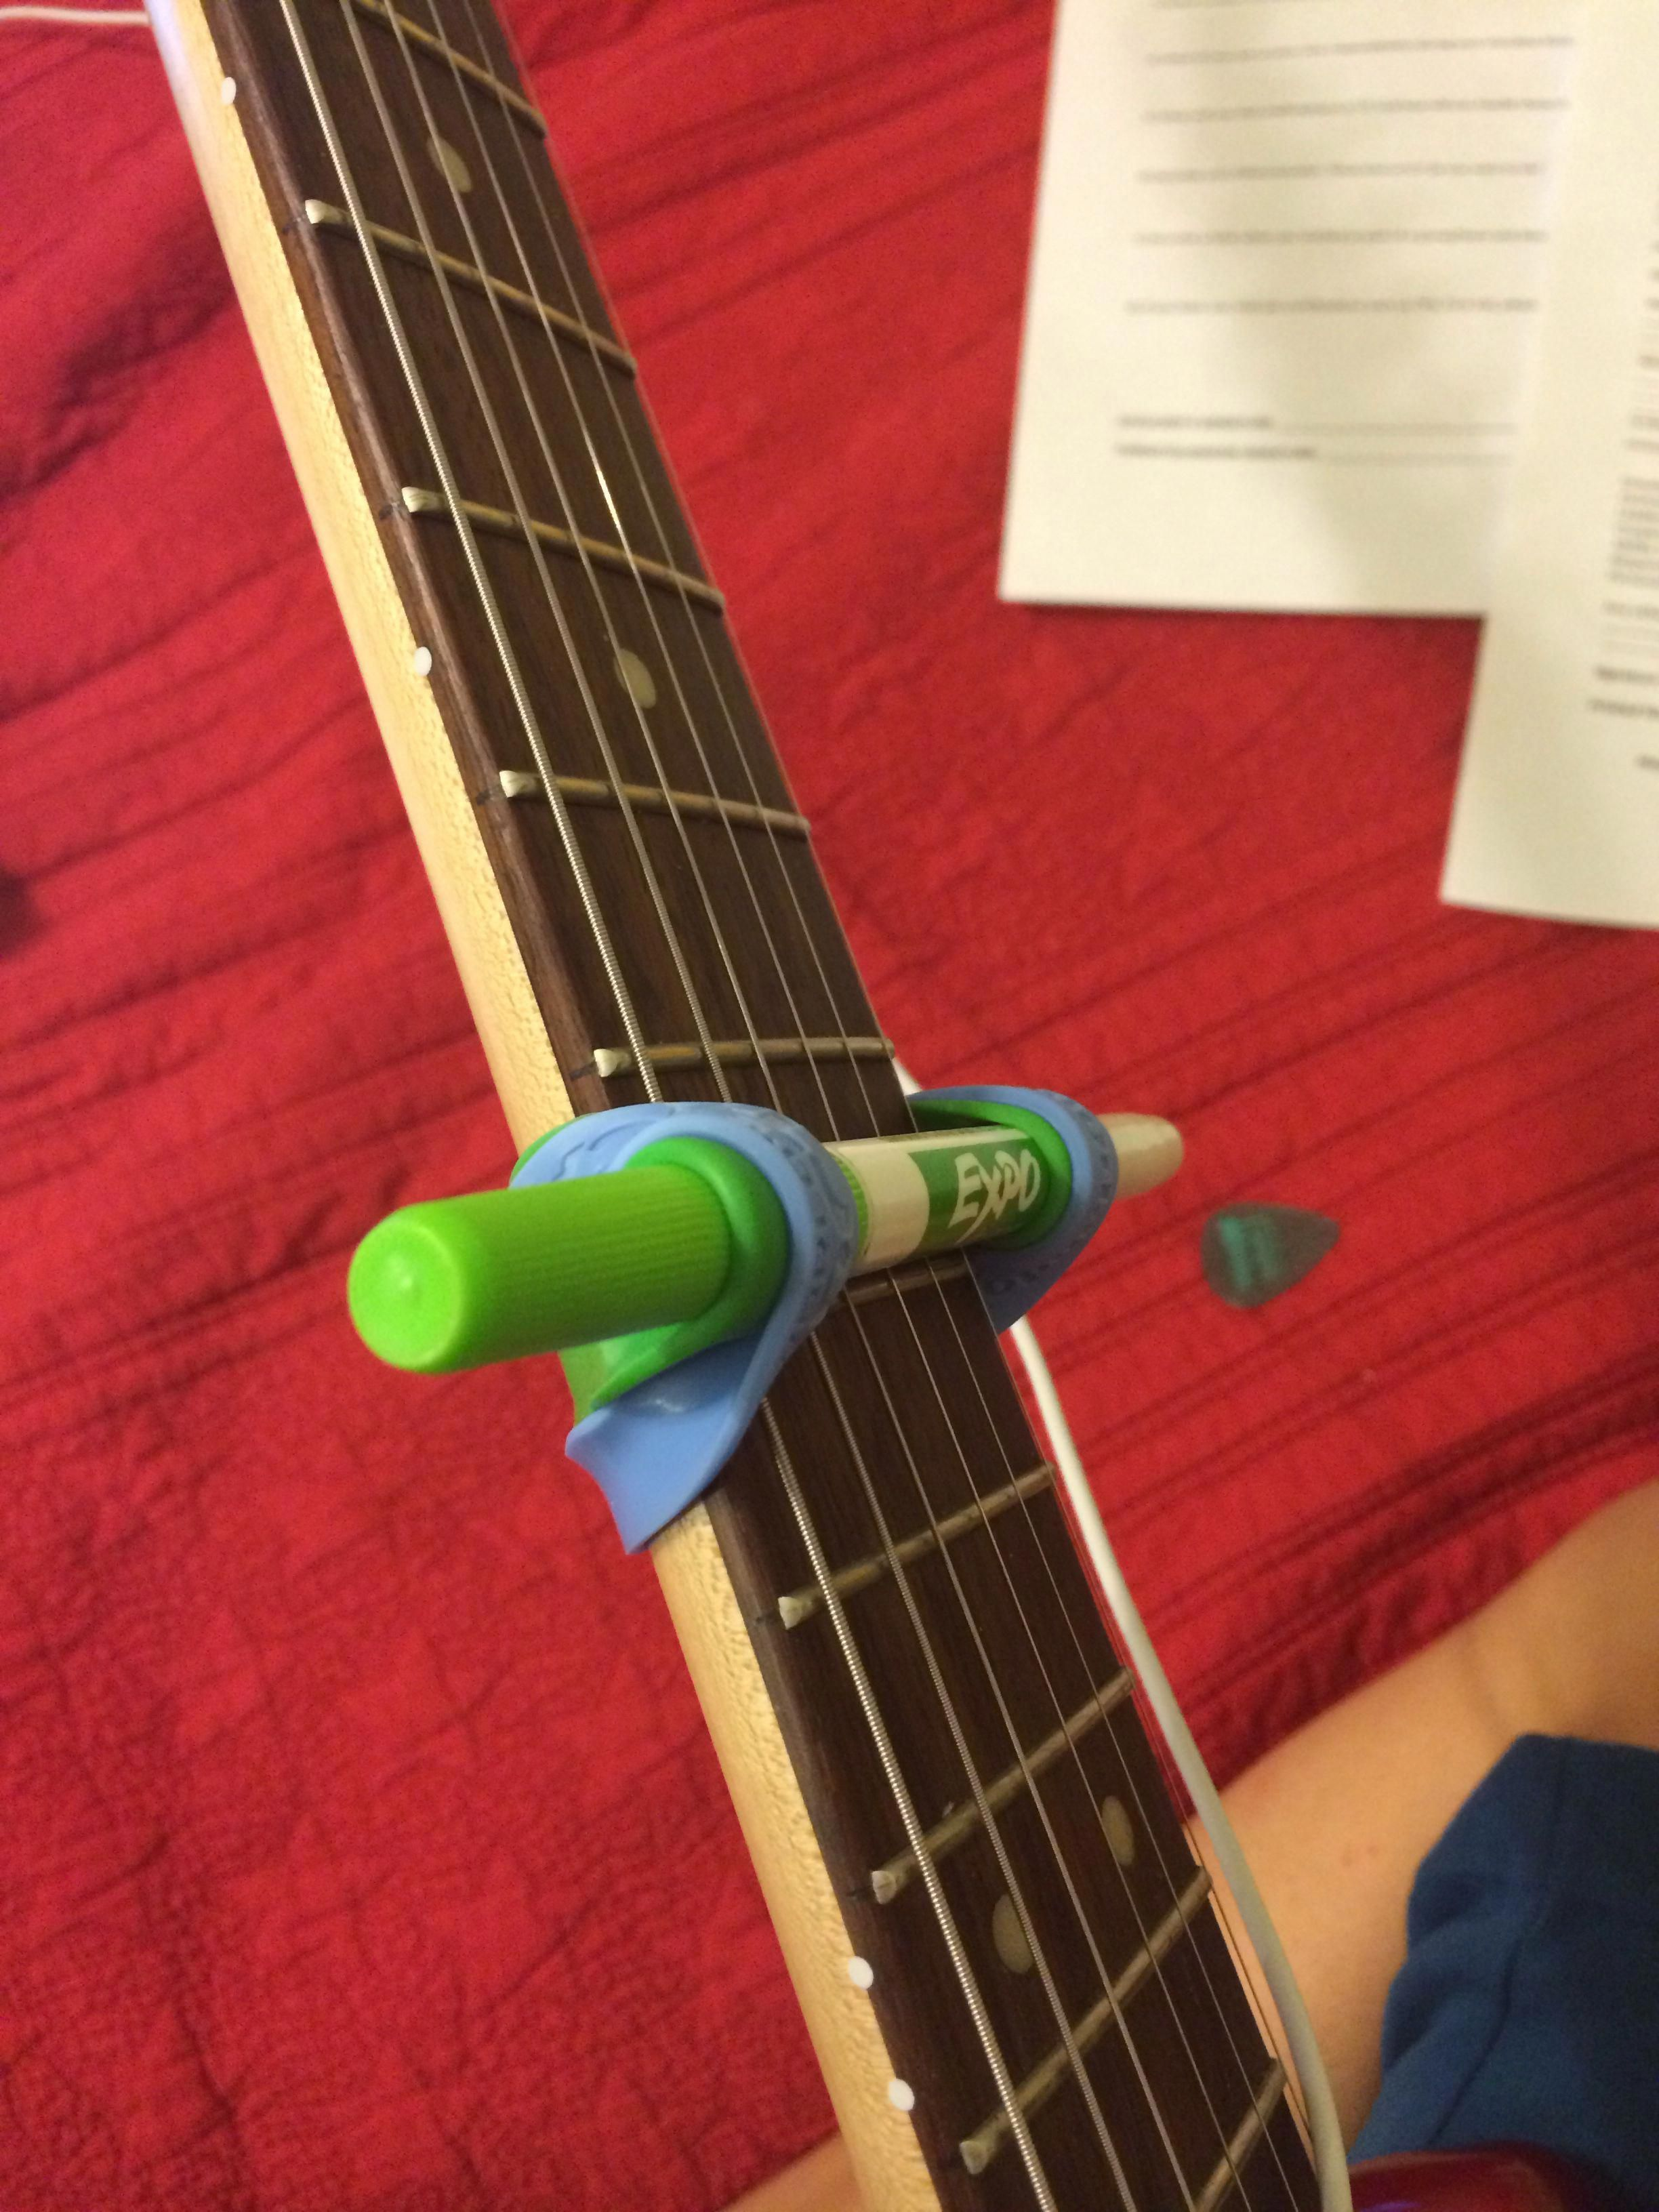 Diy Guitar Capo One Marker And Two Rubber Wrist Bands In